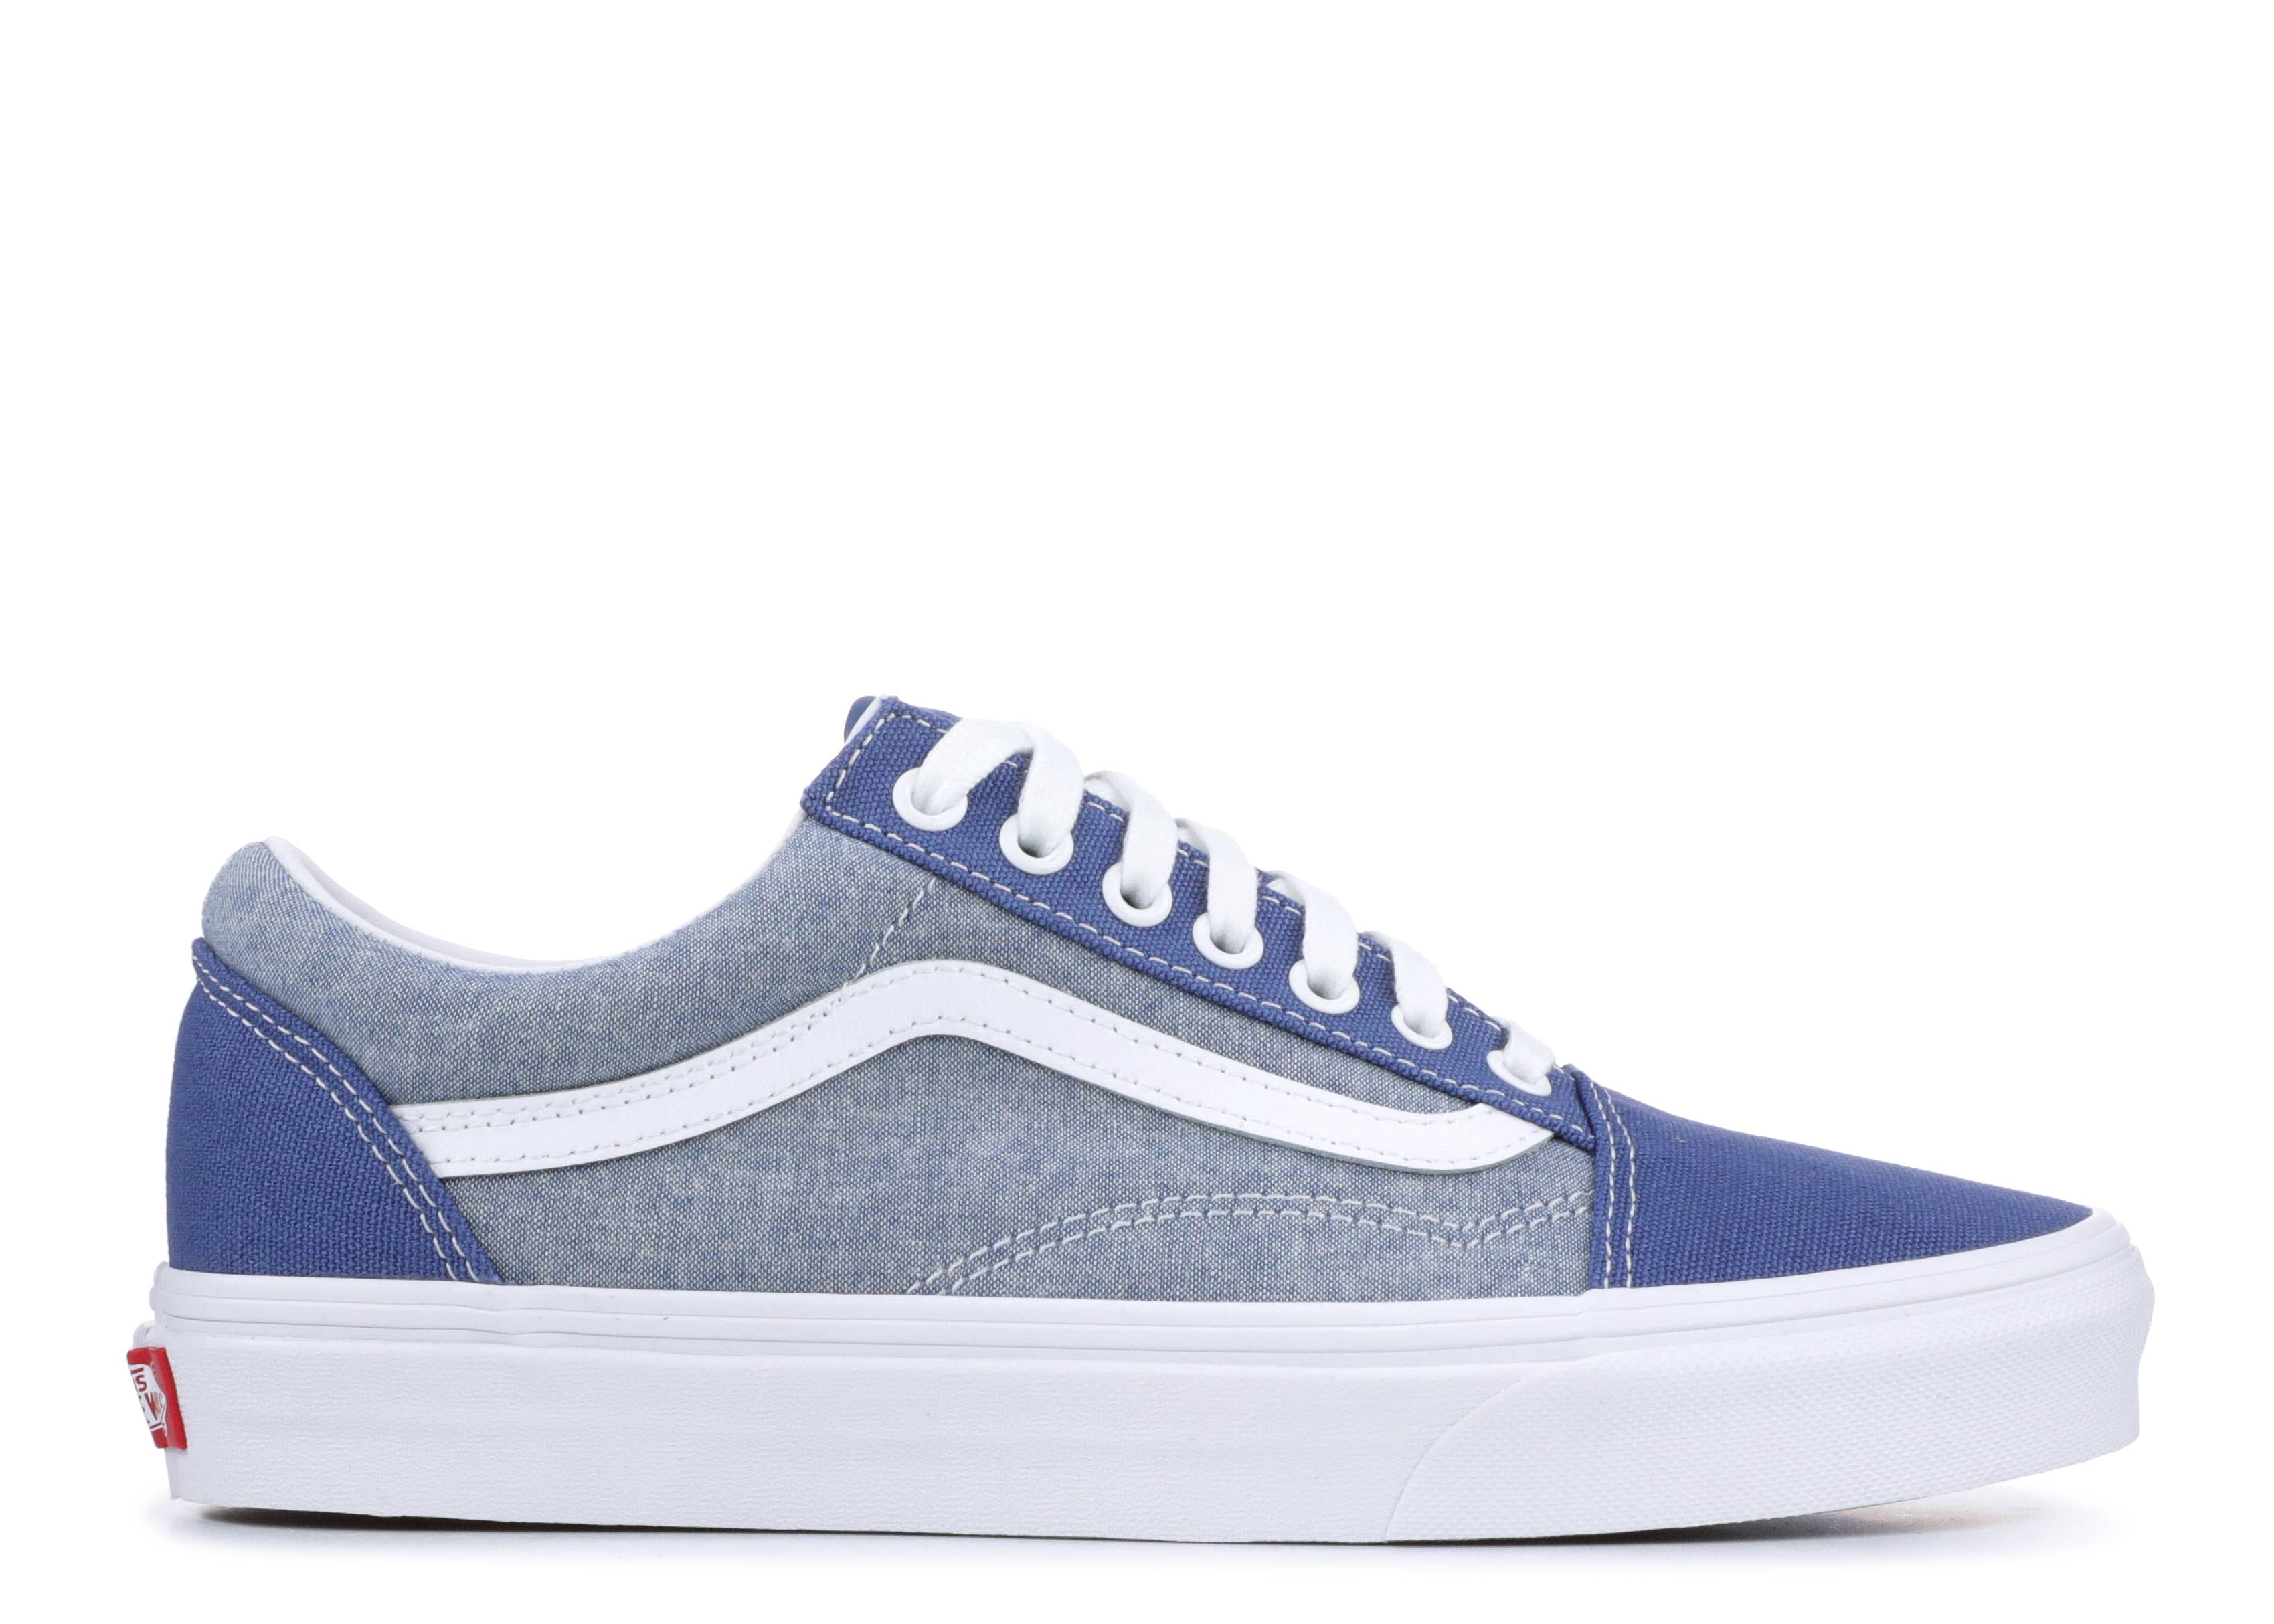 Vans Sneakers - High Tops d1e3da71e